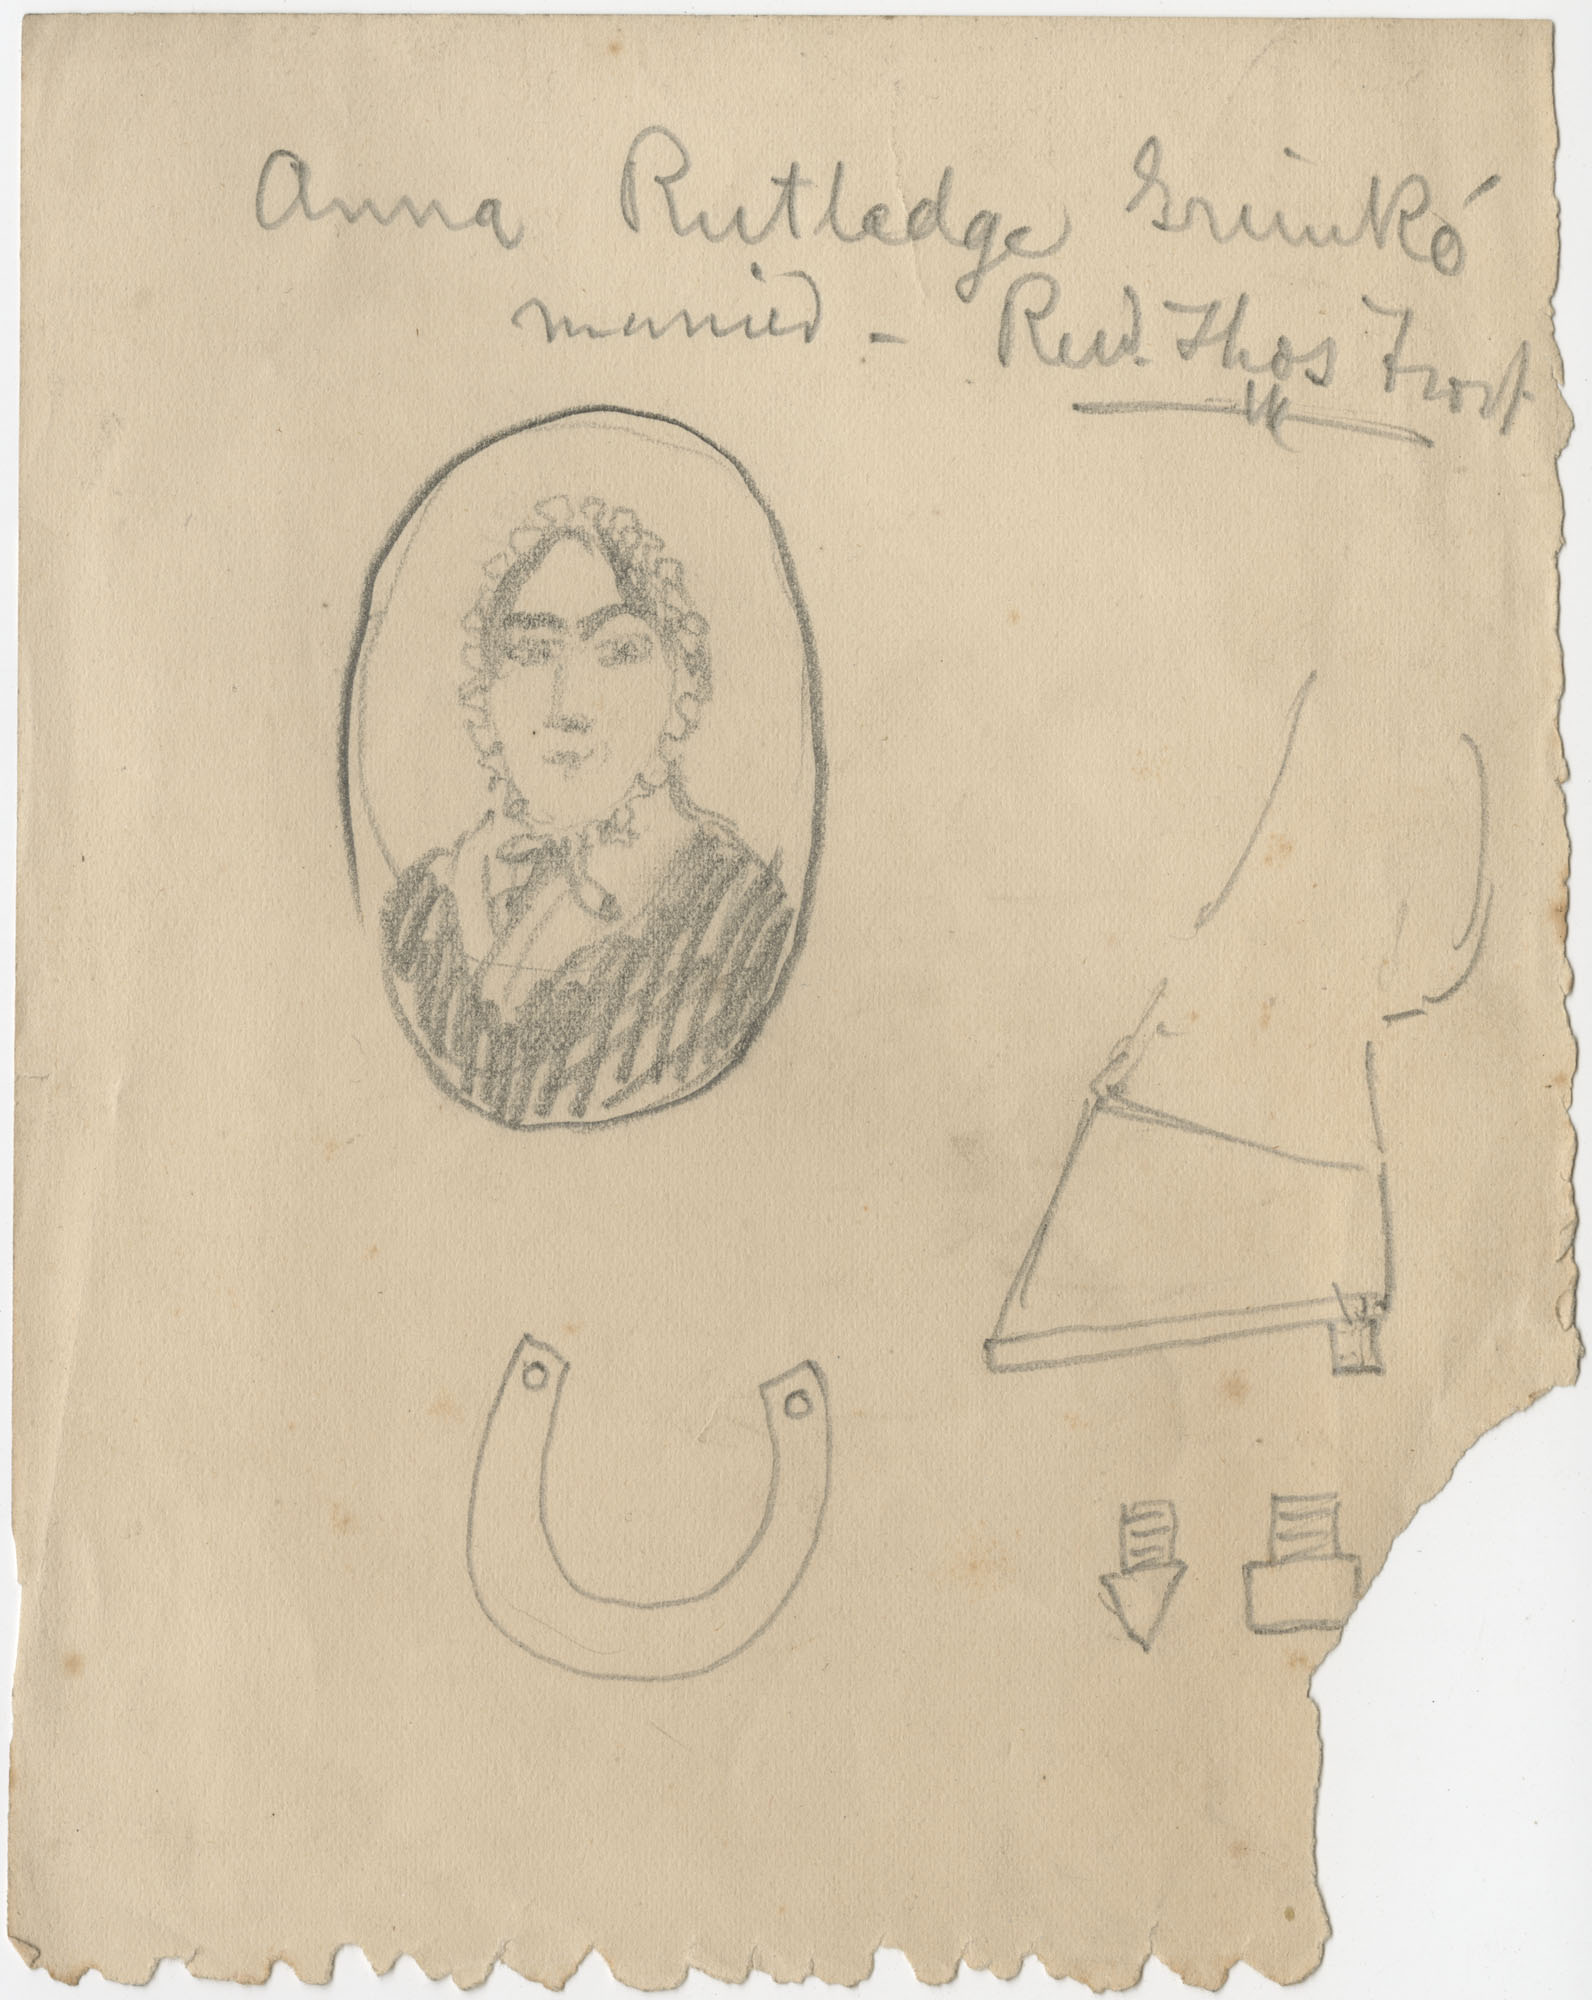 Drawing, possibly of Anna Rutledge Grimke Frost, undated